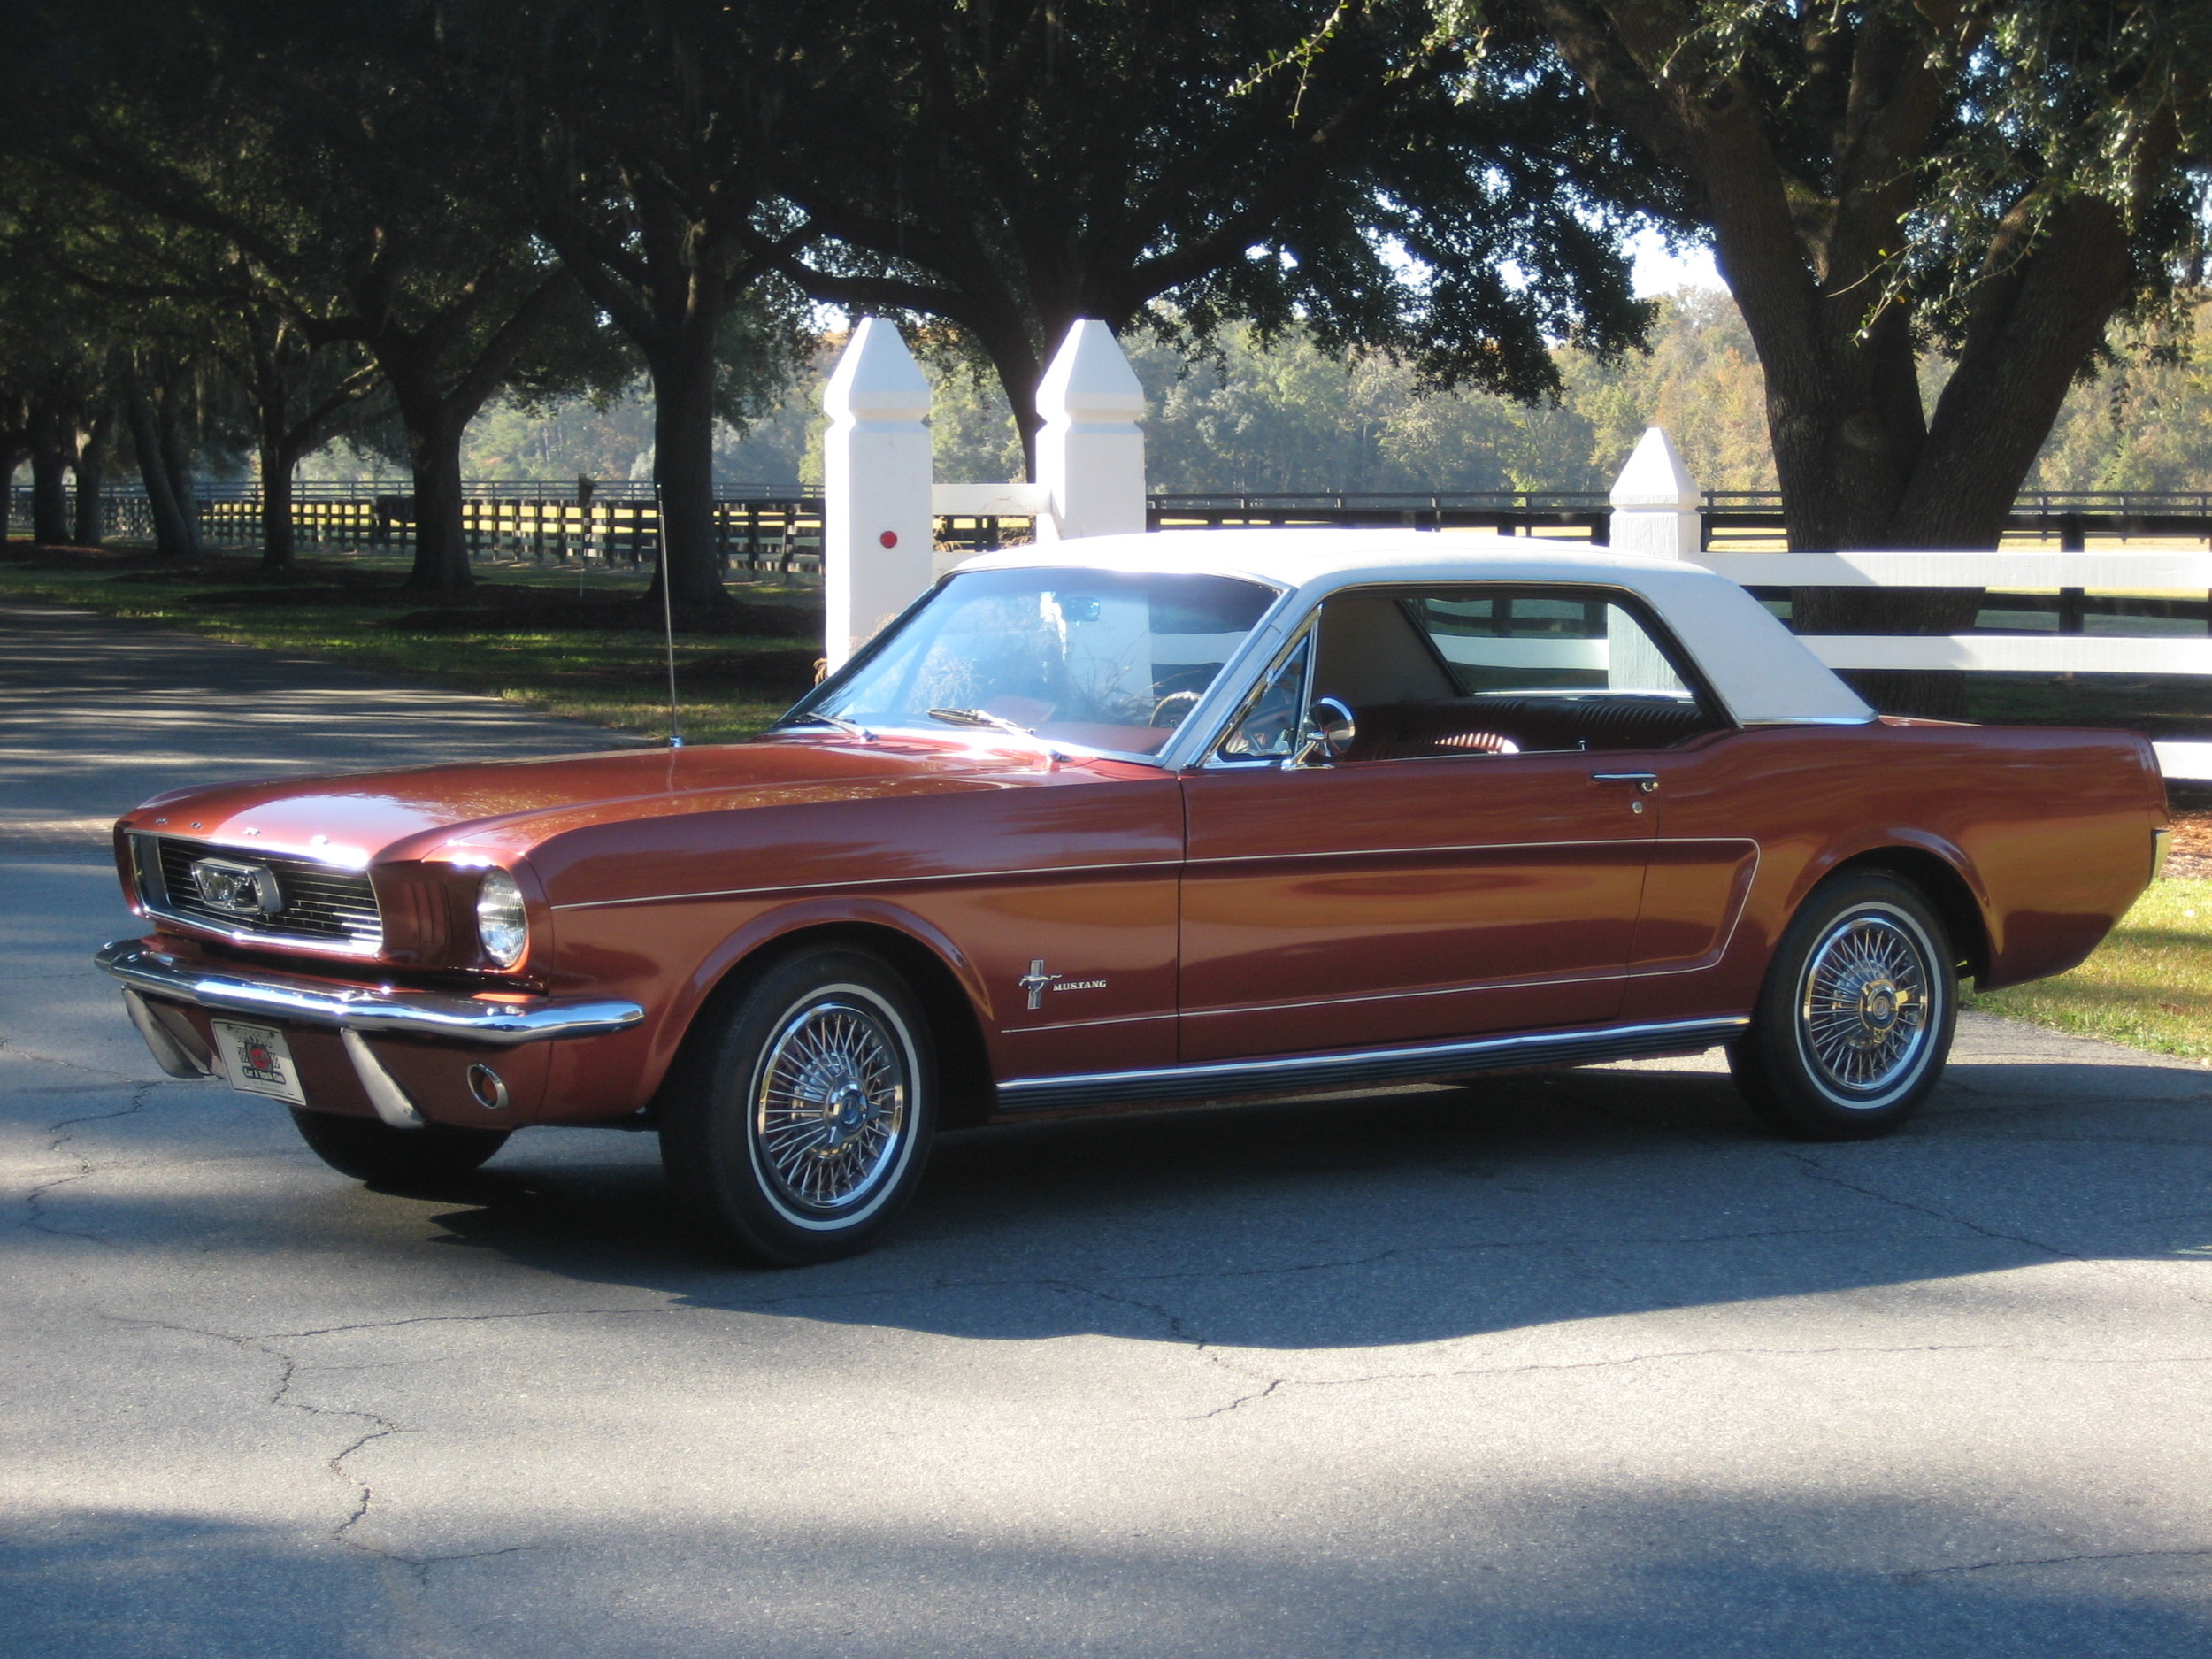 Bill Perry's 1966 Mustang Sprint 200